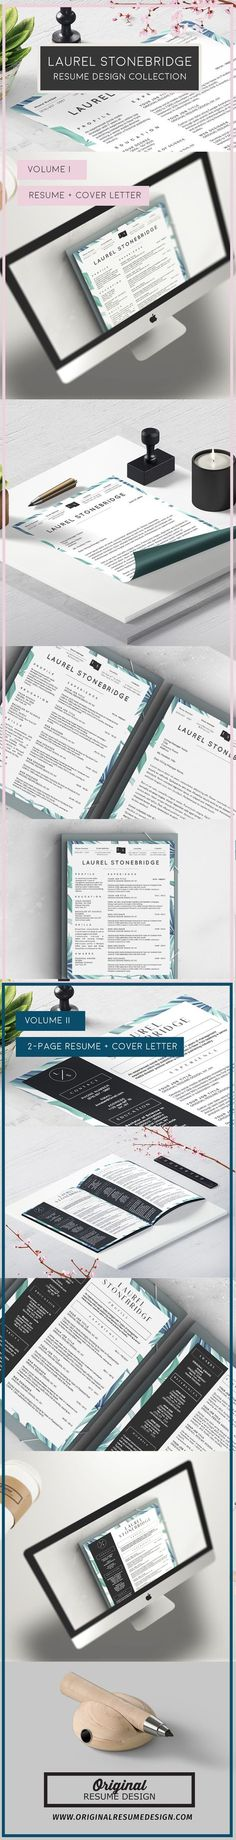 Beautiful Modern Resume Template For Microsoft Word   Laurel Stonebridge  Volumes I And II